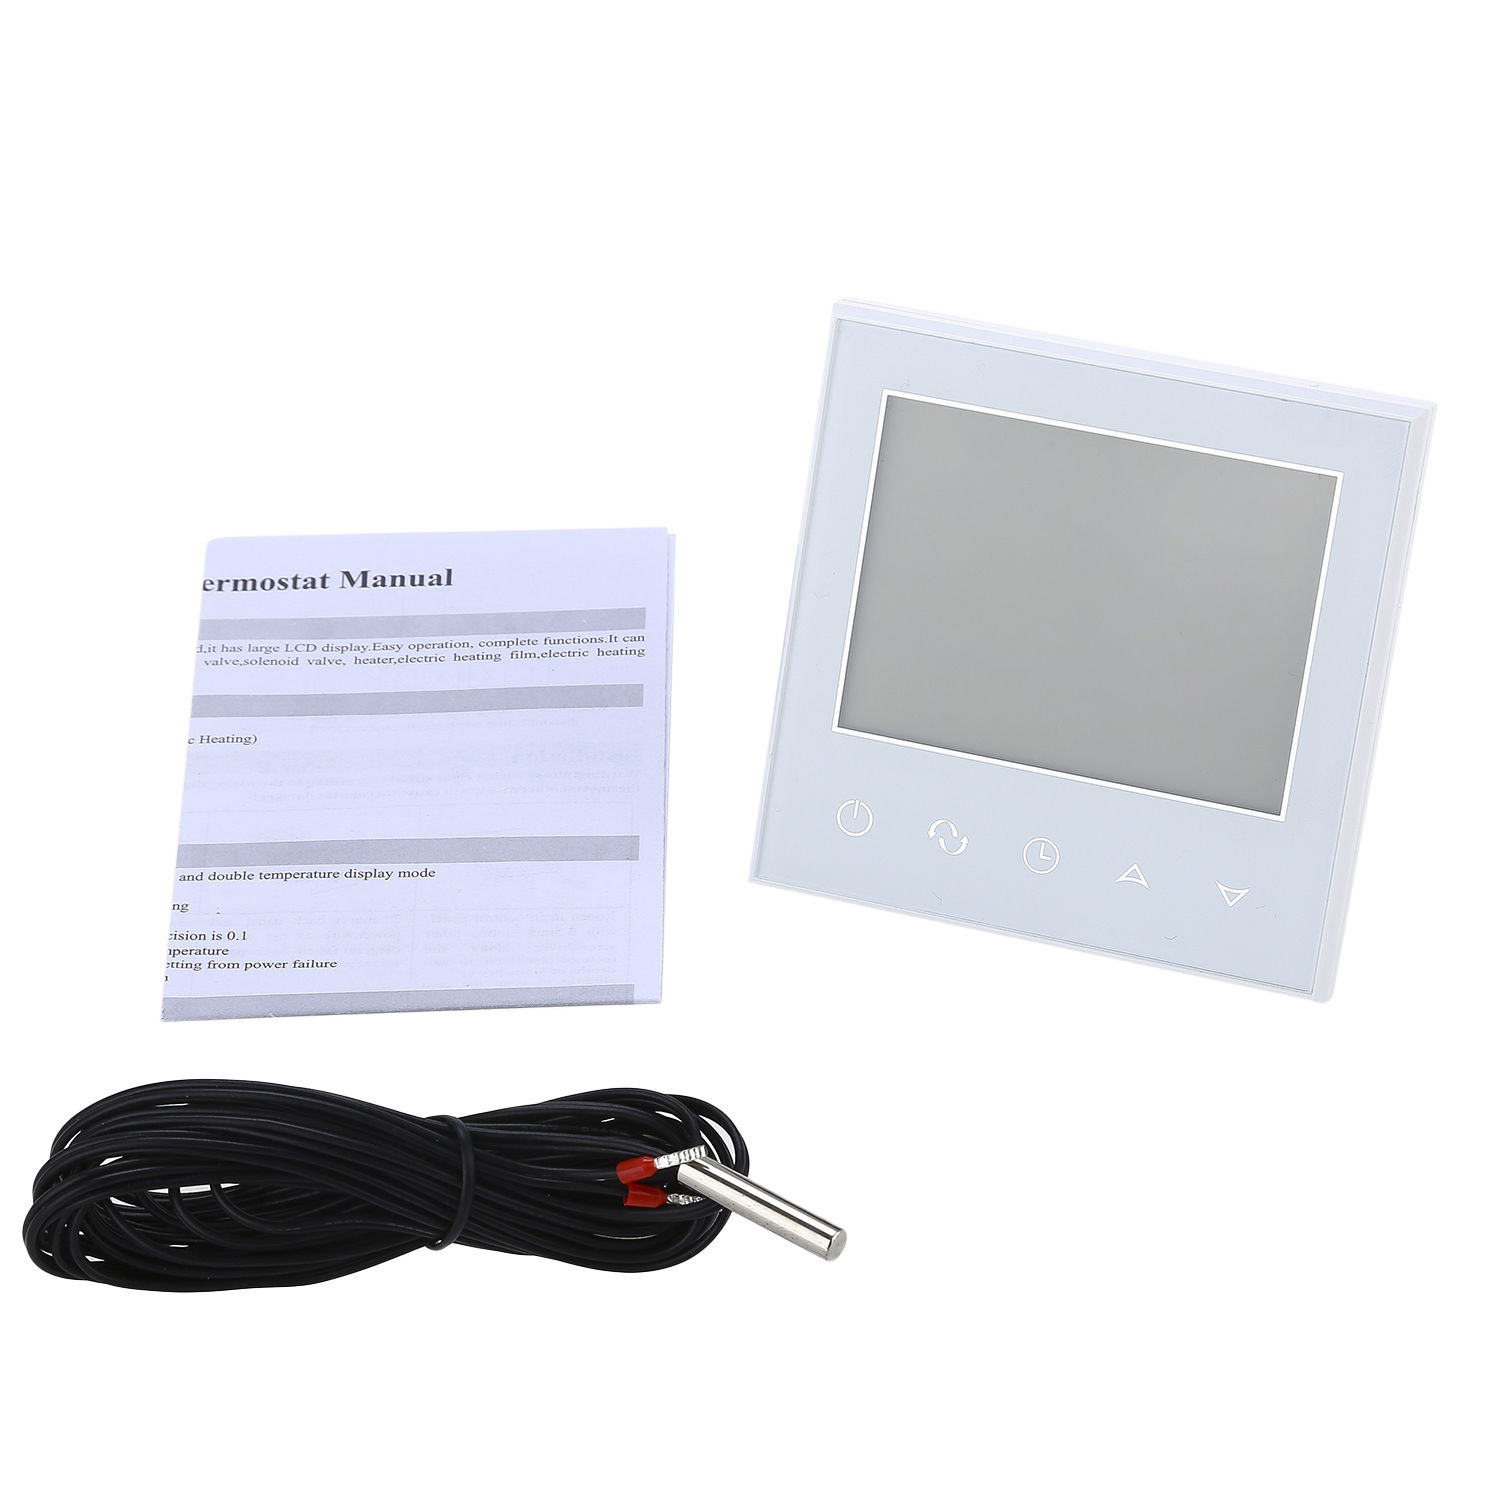 WIFI 16A Digital LCD Display Thermostat Home Room Heating Temperature Controller